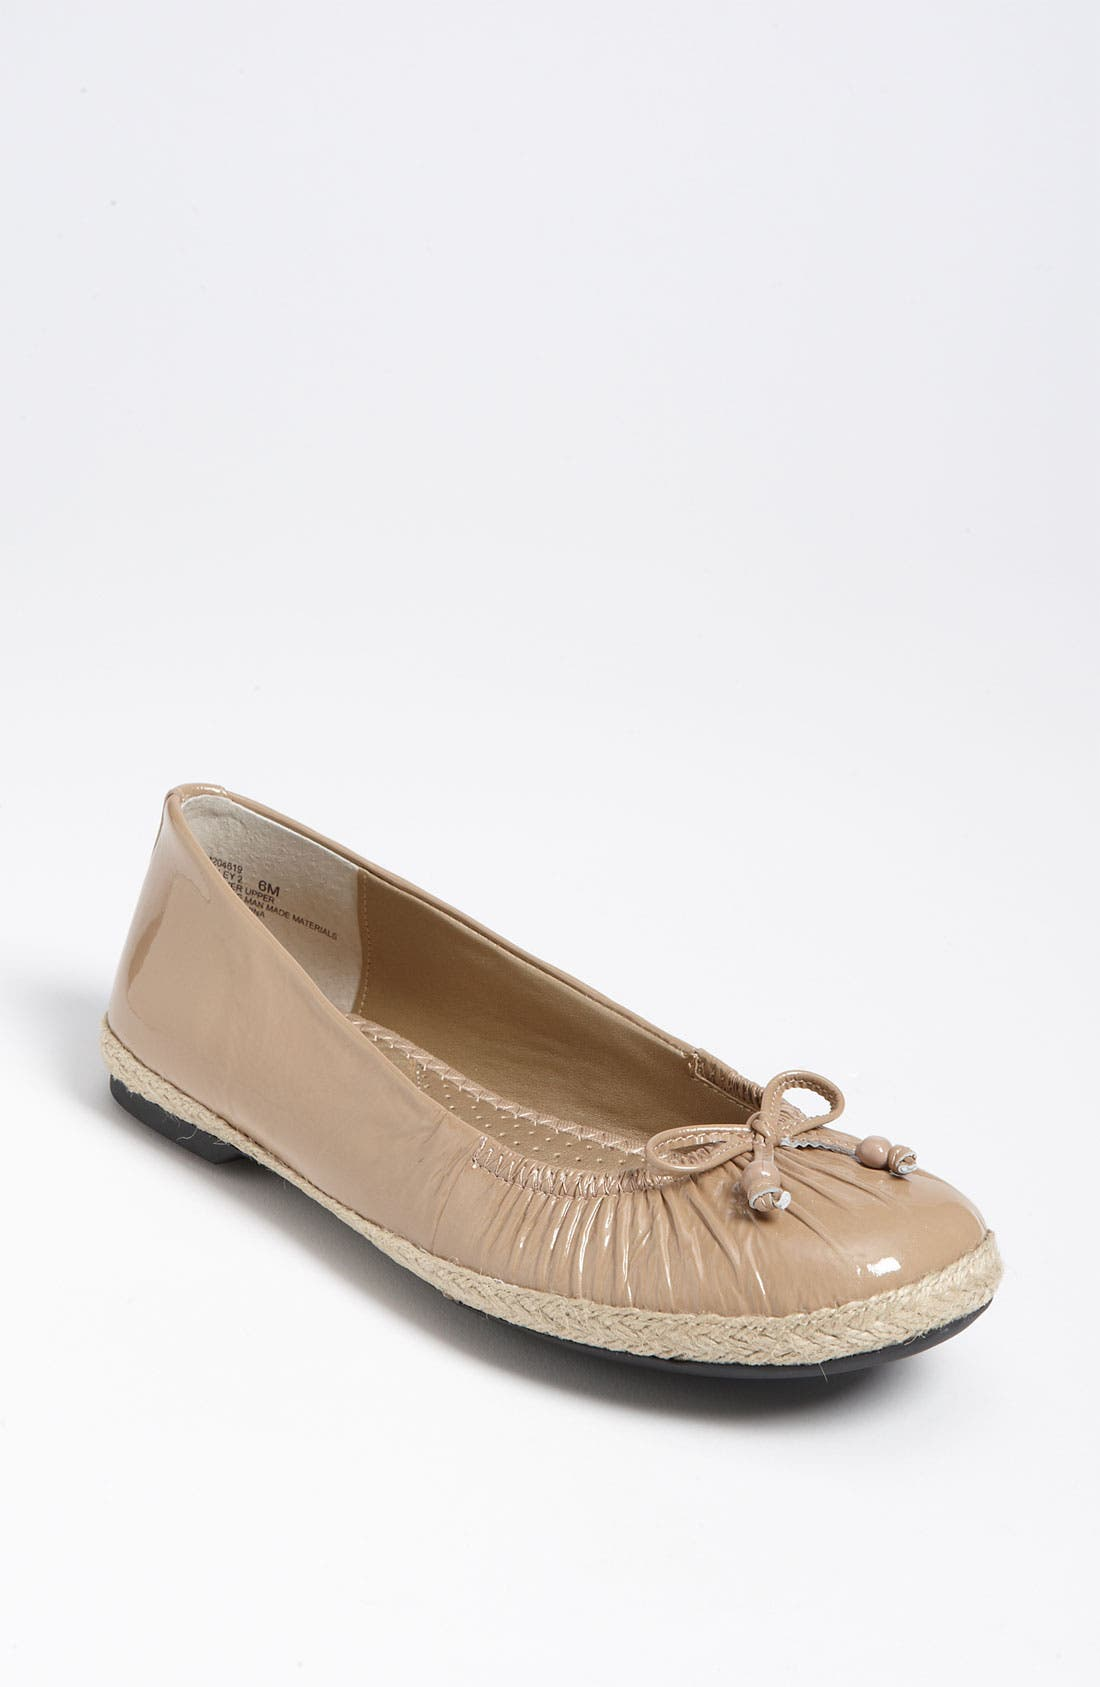 Alternate Image 1 Selected - Me Too 'Hailey' Espadrille Flat